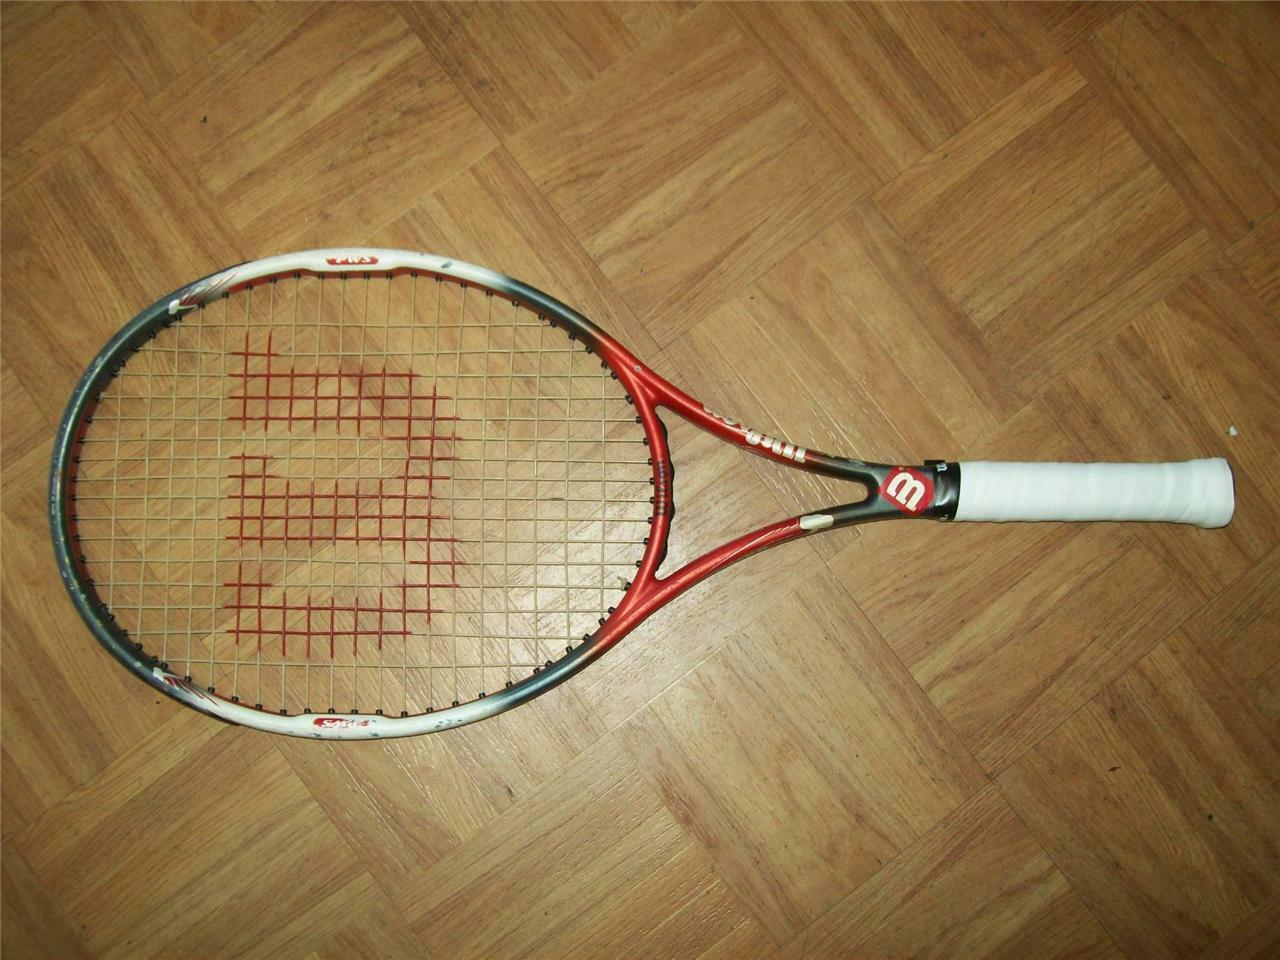 Wilson Junion Hammer 6.4 Midplus 95 head 4 small grip Tennis Racquet